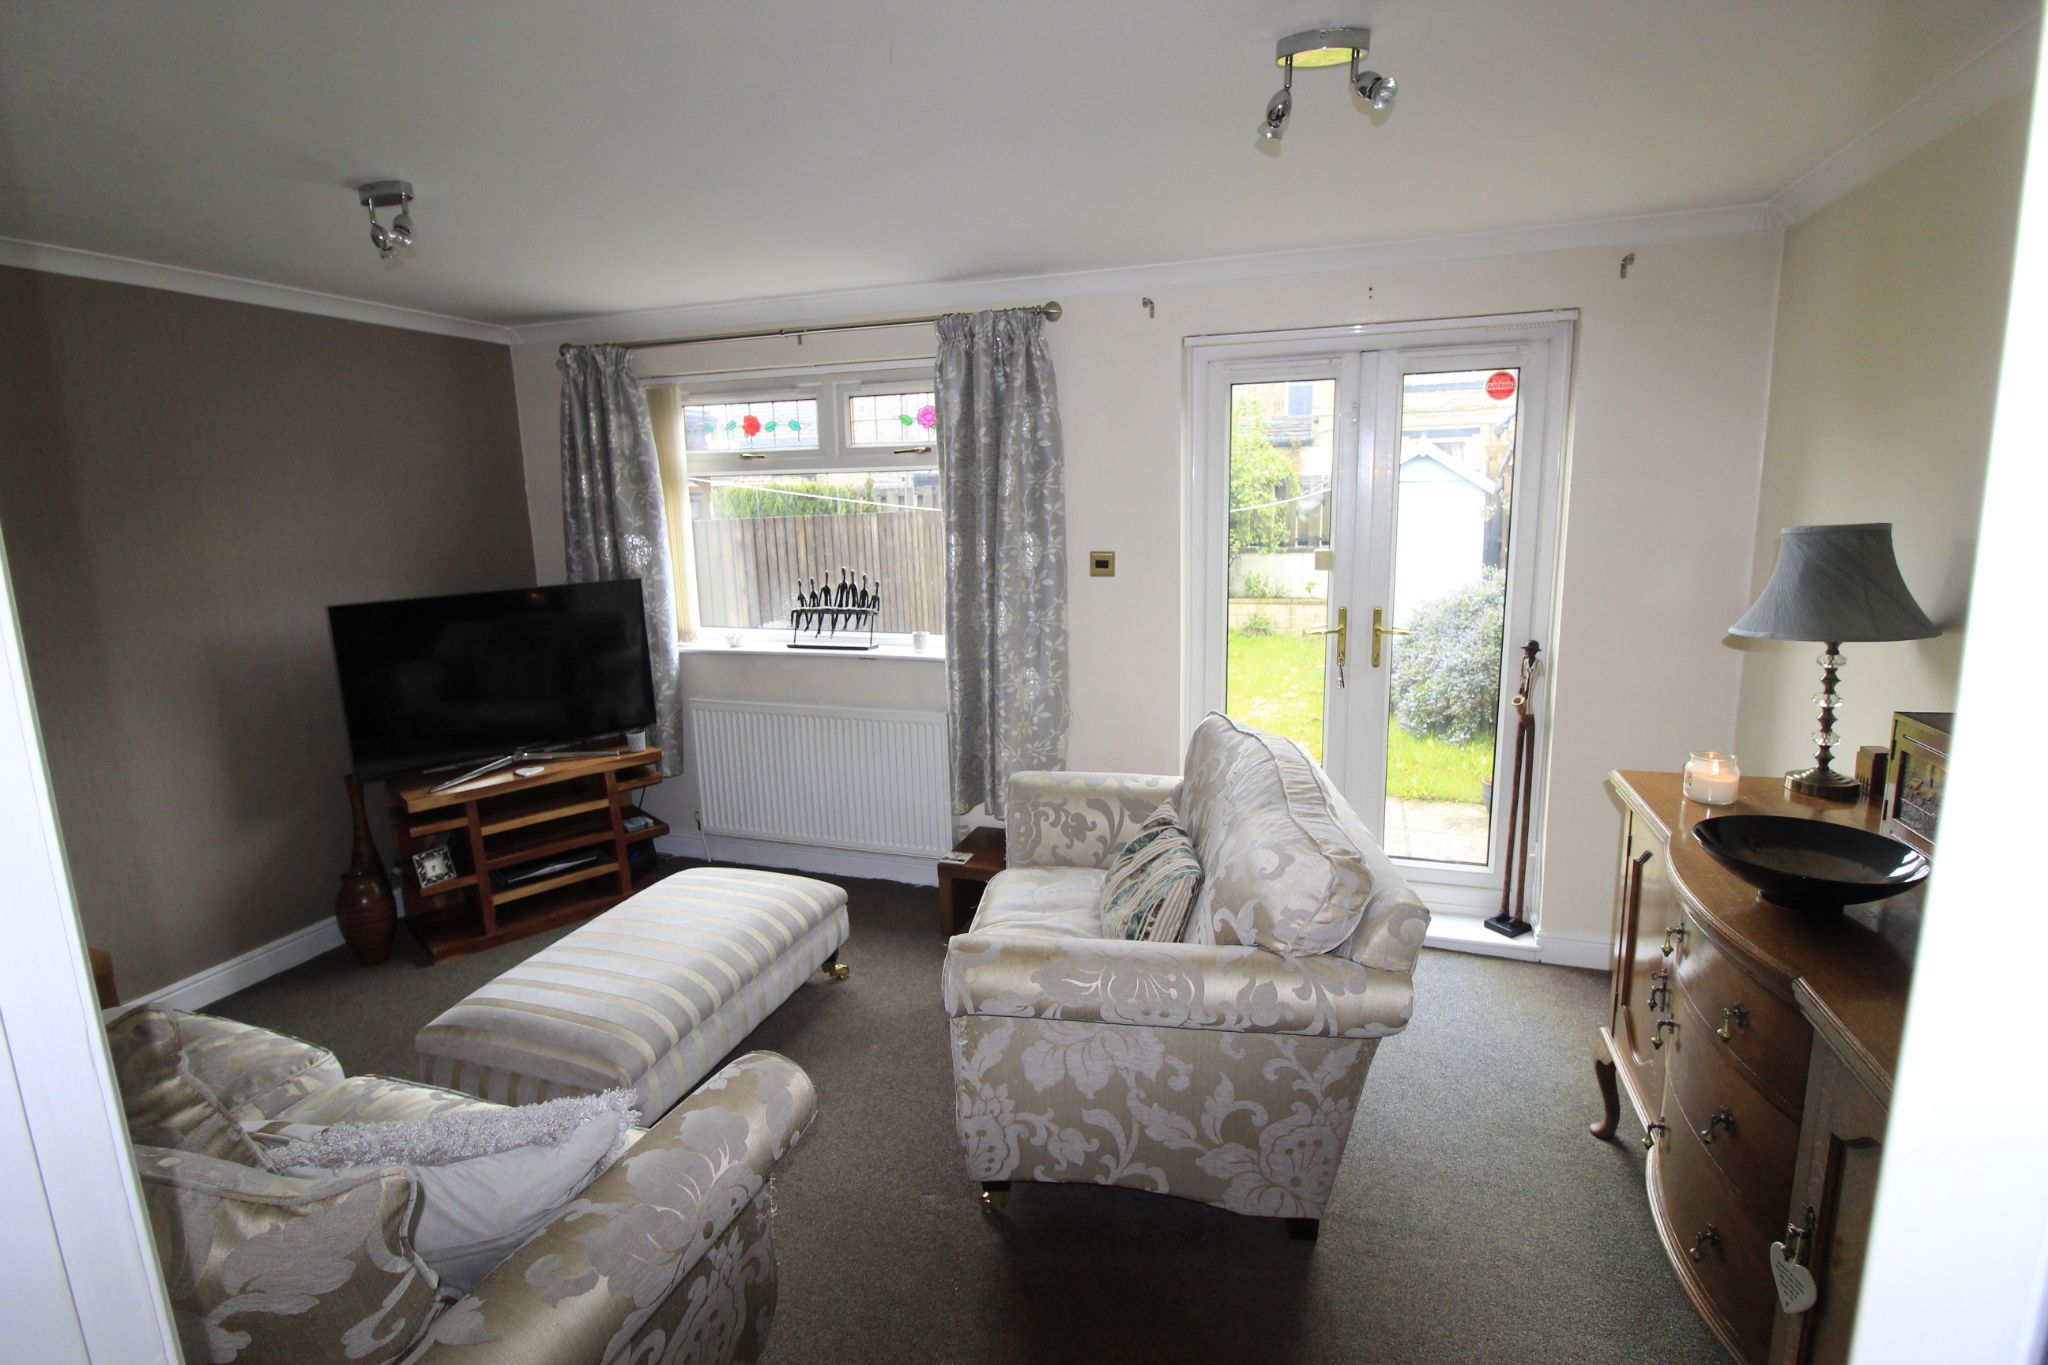 3 bedroom mid terraced house Let in Brighouse - Lounge